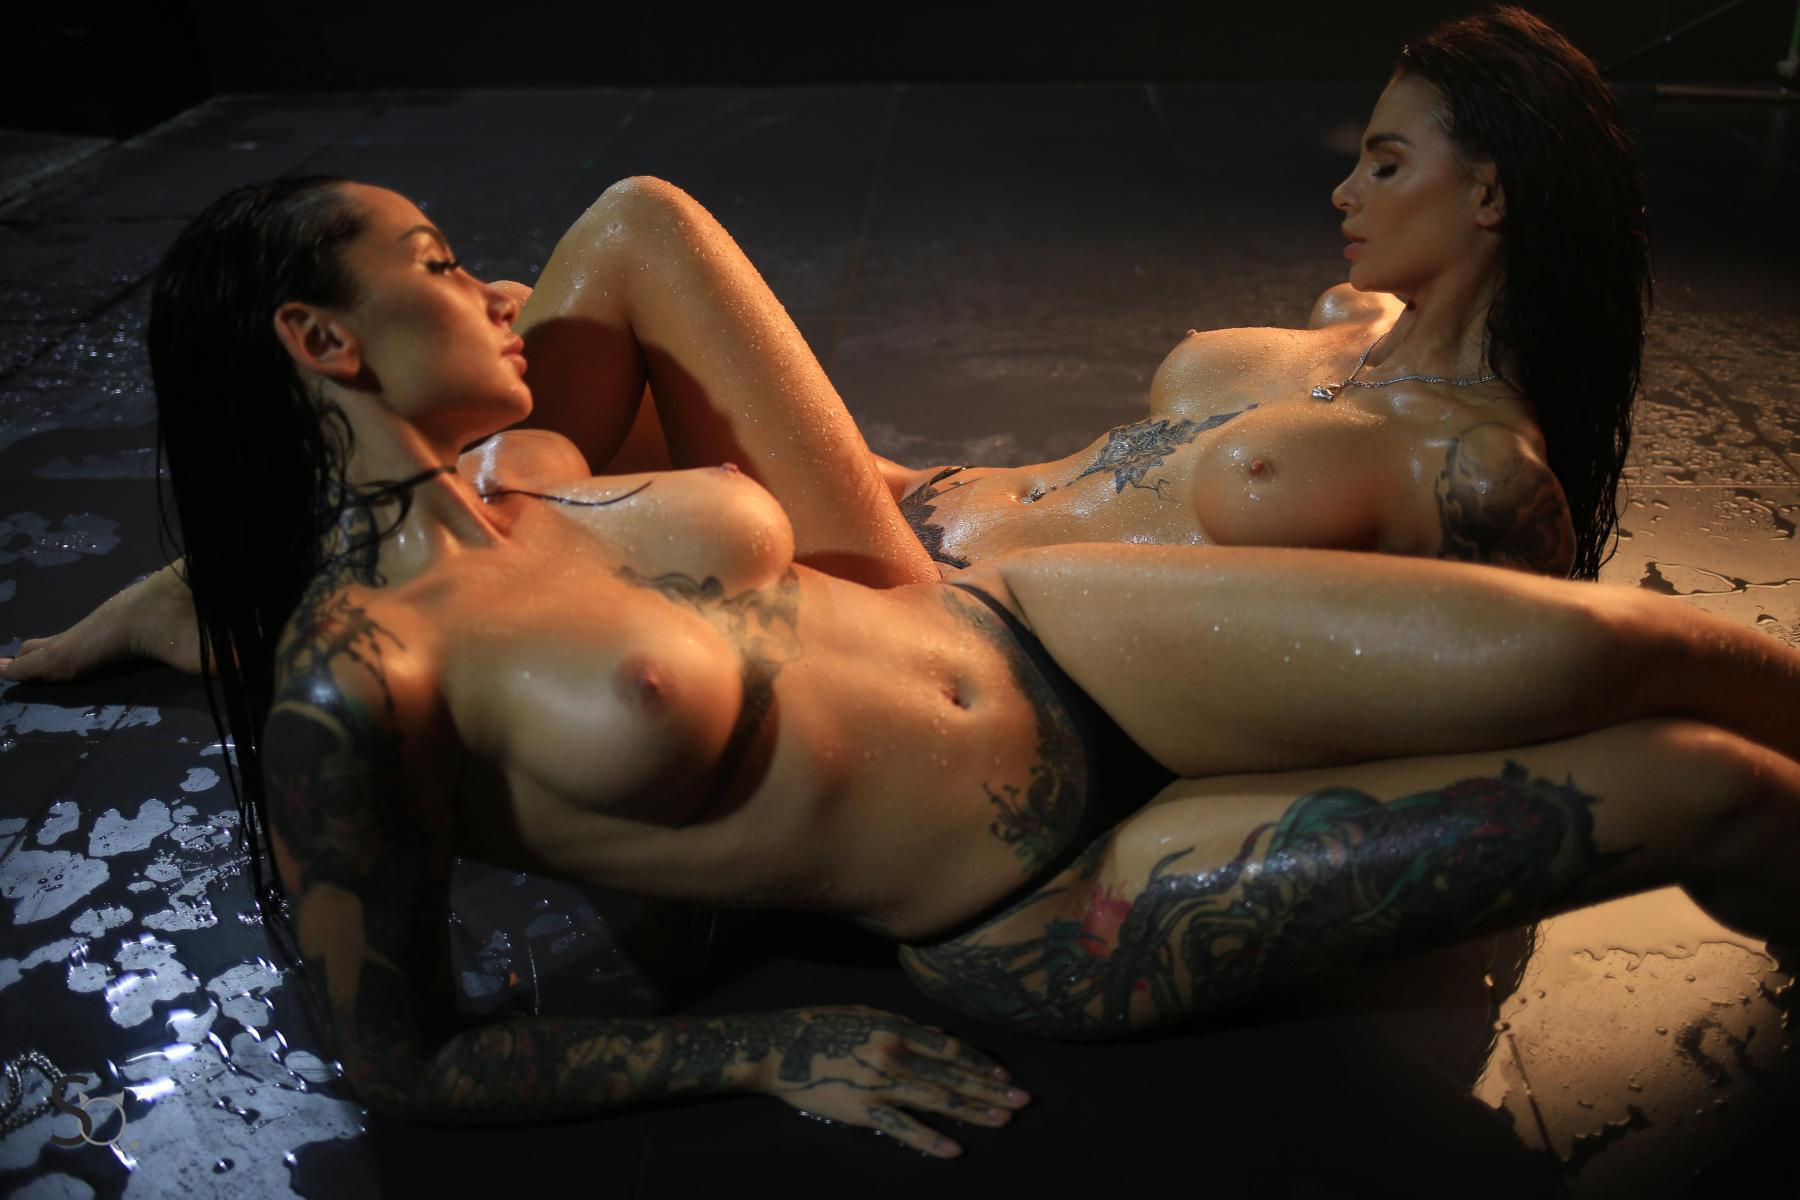 Lee With Hot Friend Porn OnlyFans Leaked Nudes 77